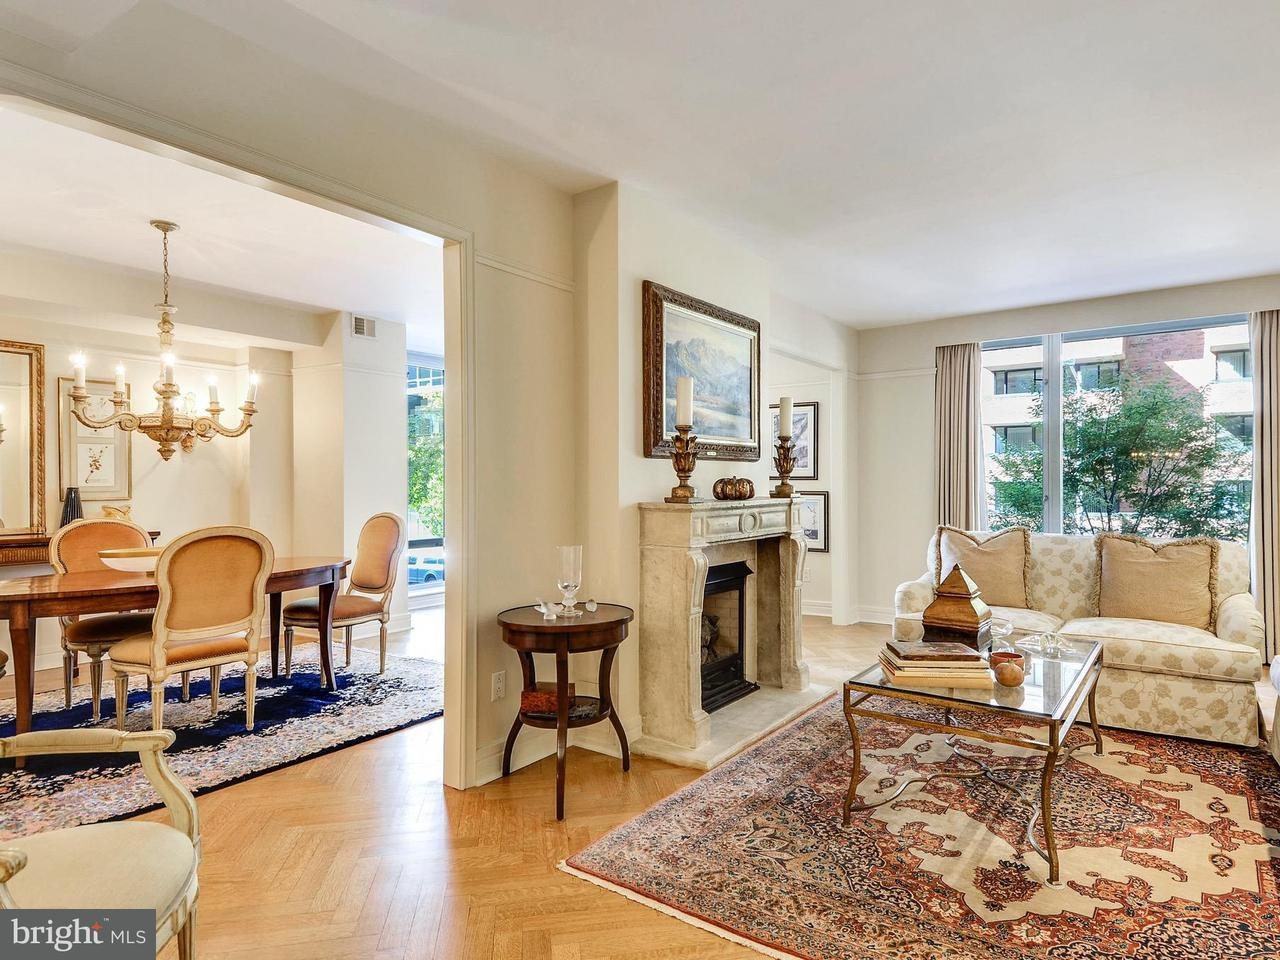 Condominium for Sale at 1155 23rd St NW #2e Washington, District Of Columbia 20037 United States